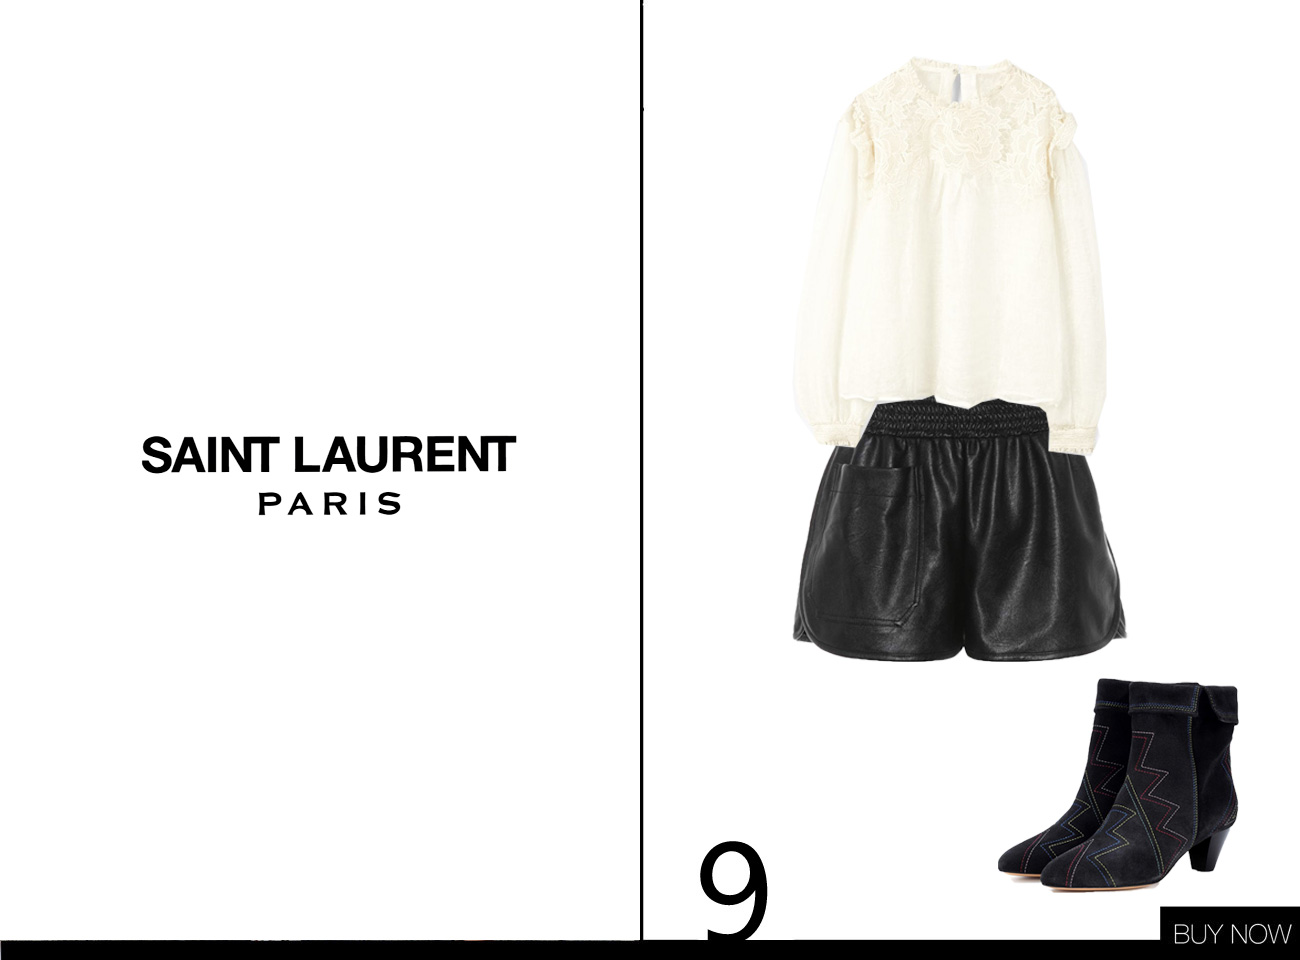 Saint Laurent Herbst Winter Kollektion 18/19 nachgestylt